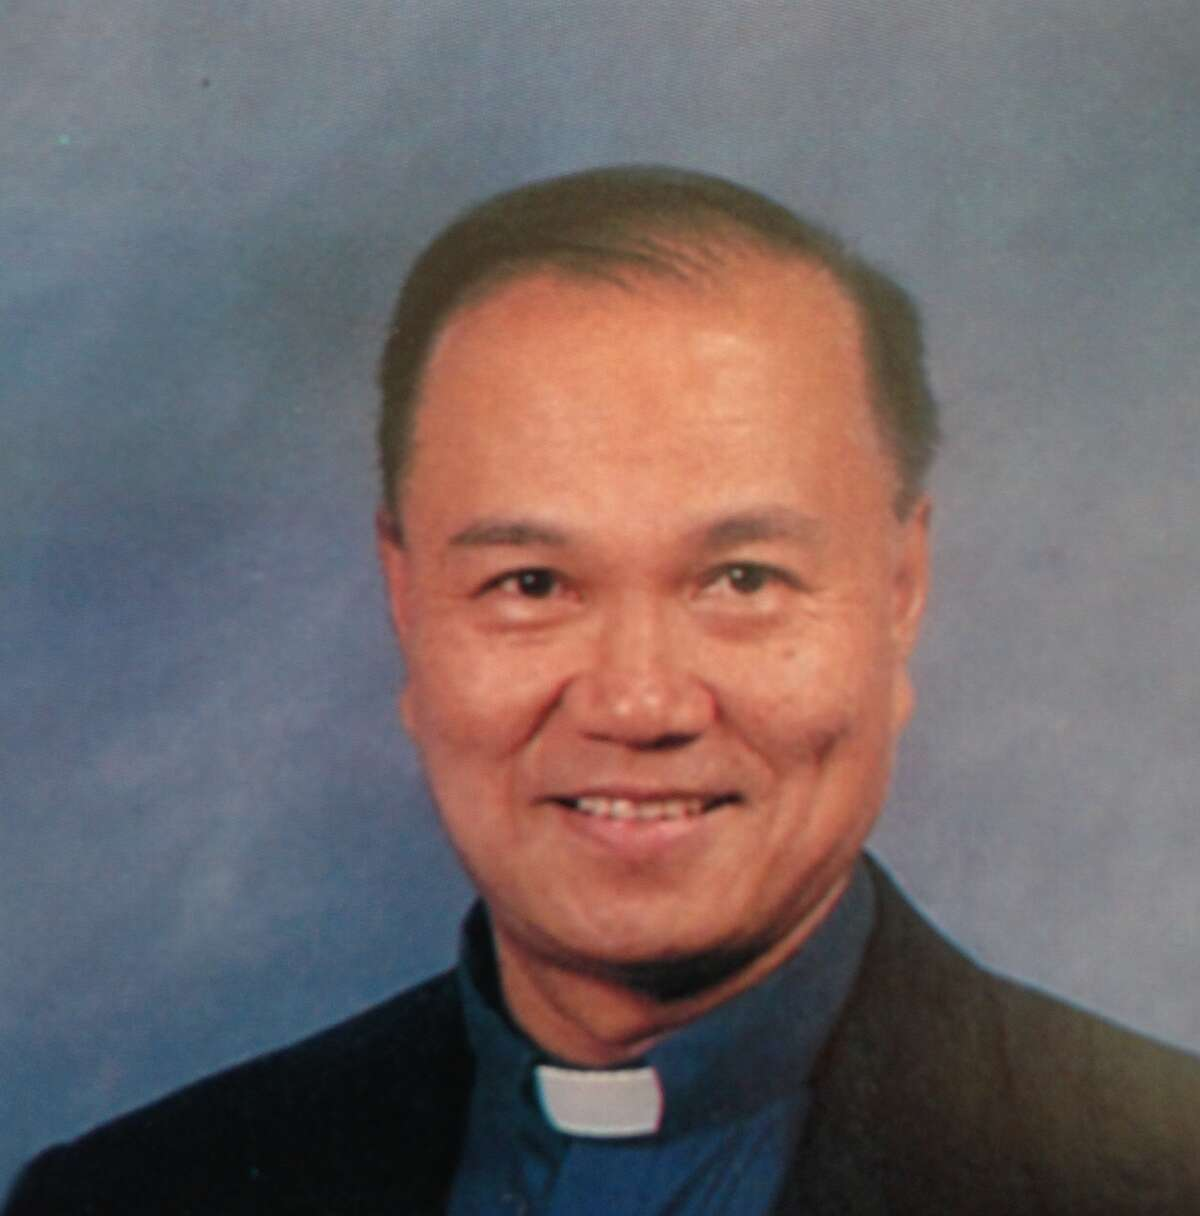 Father Frederico Ablog died from injuries caused by a four-car crash.